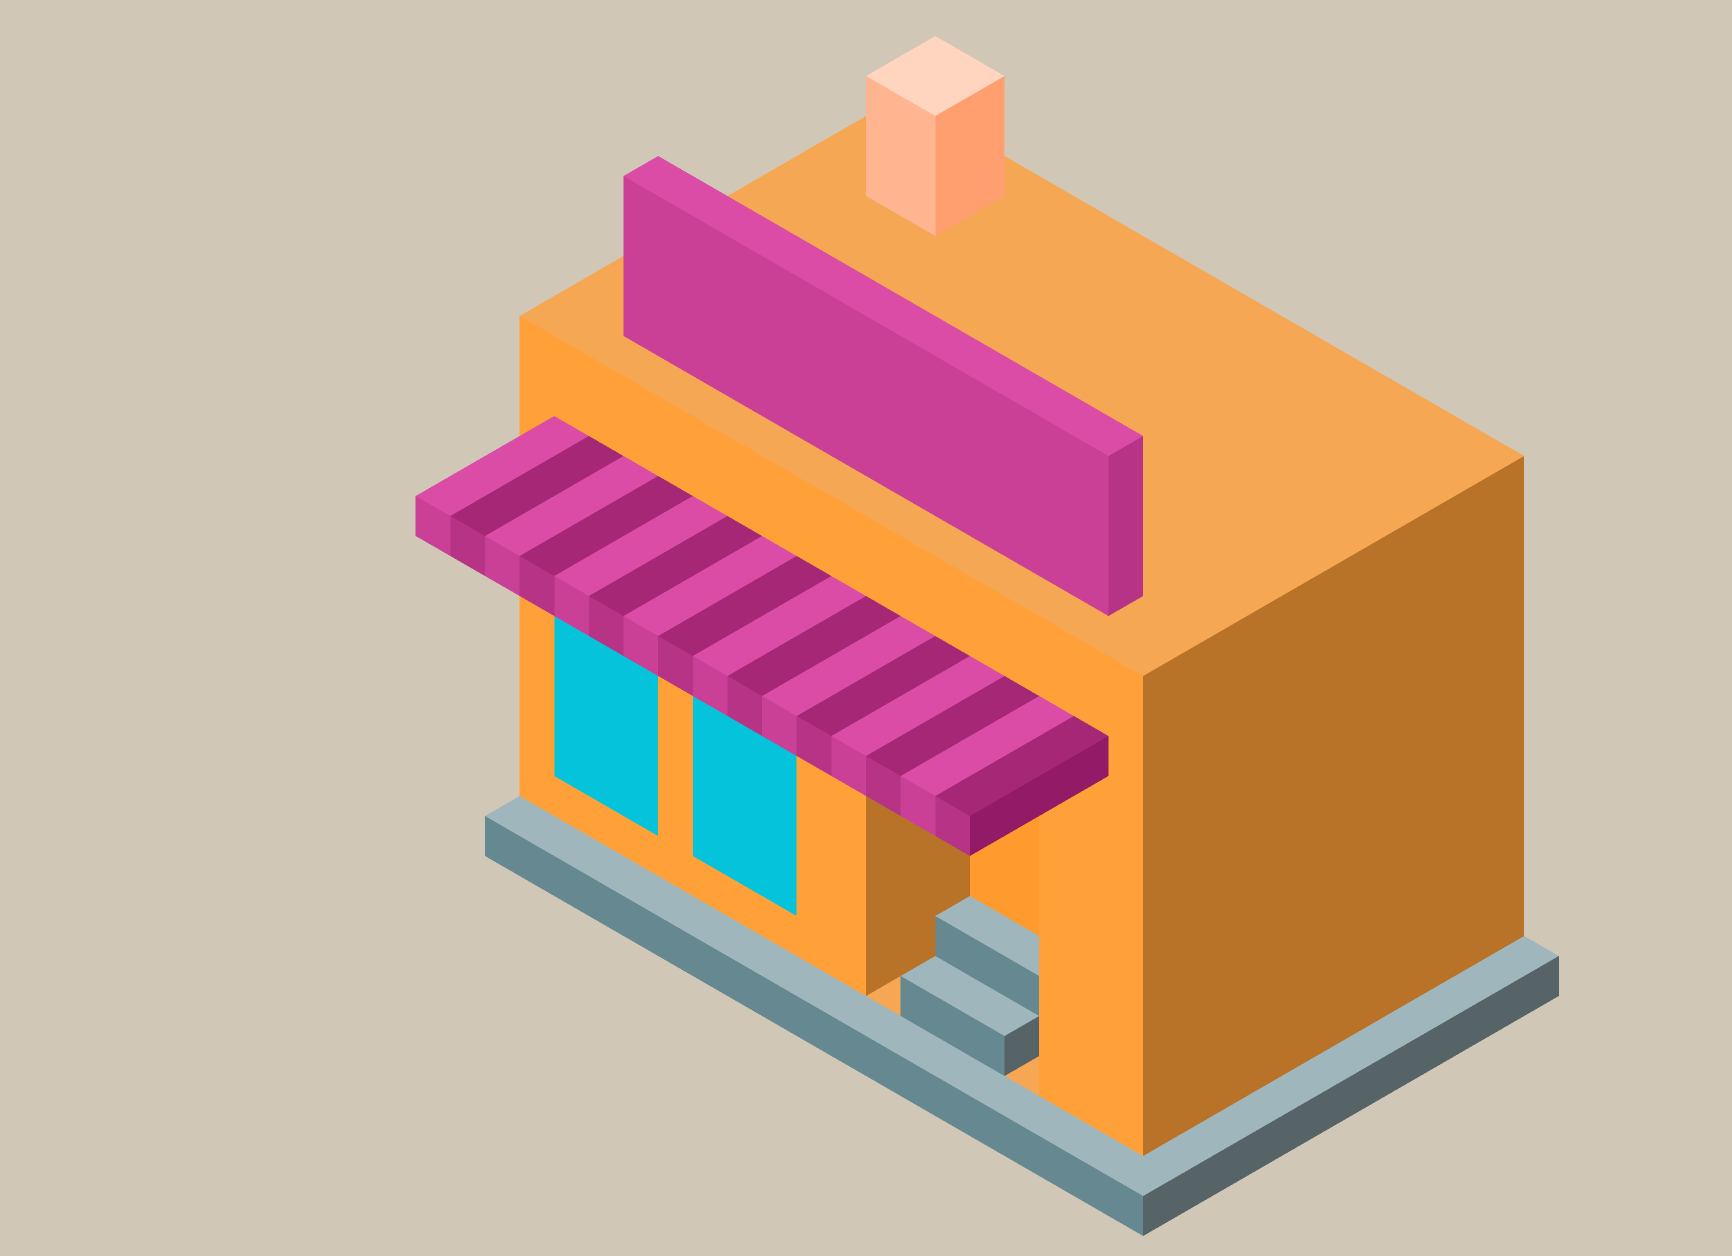 illustration of a house in isometric view